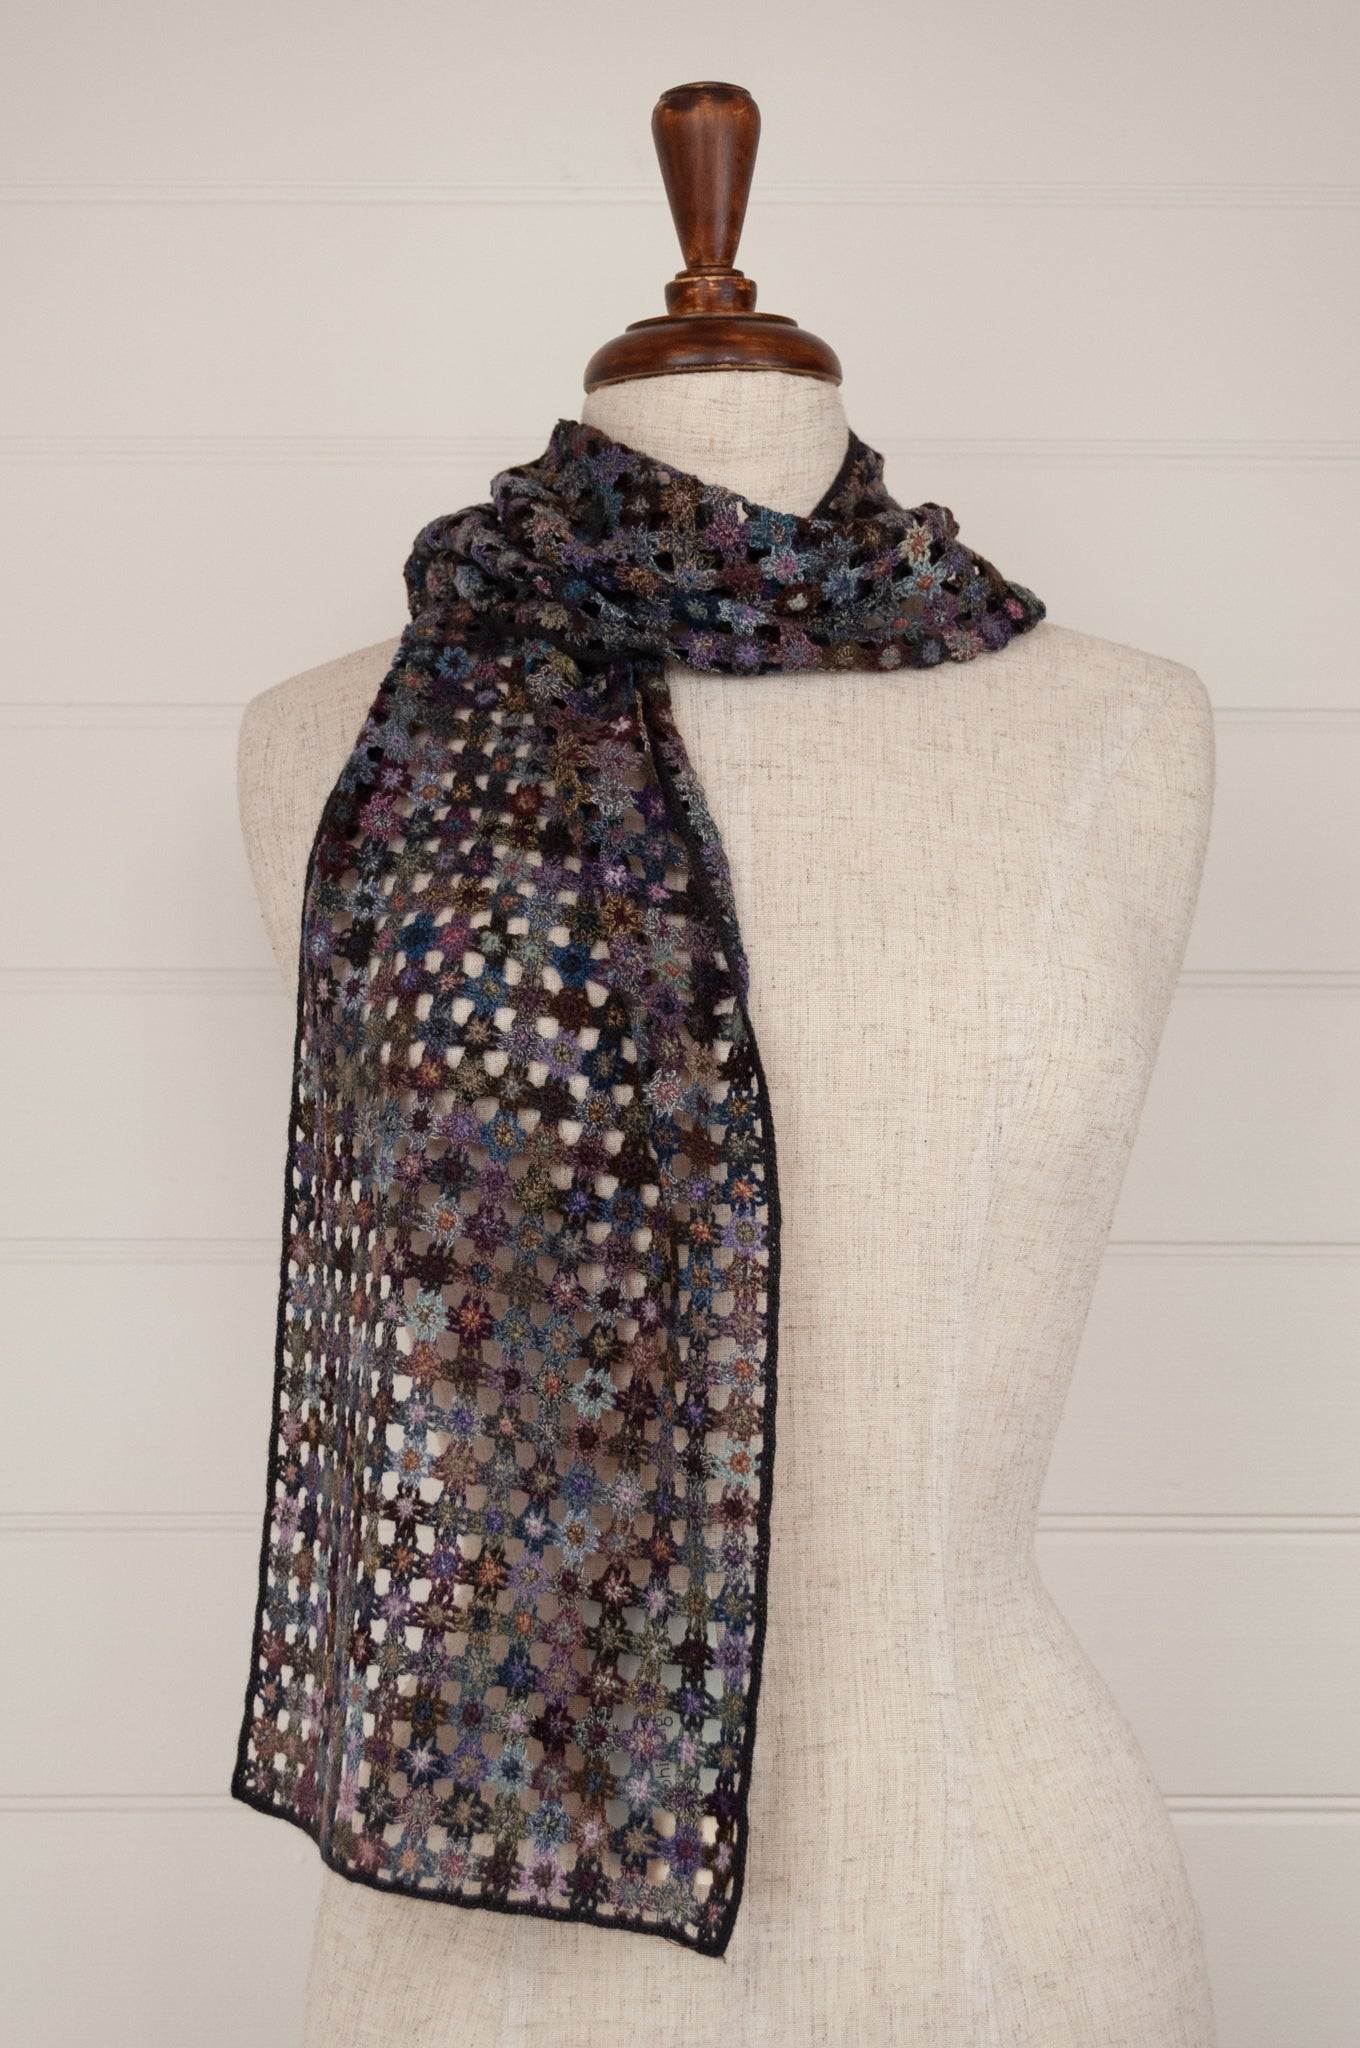 Sophie Digard Paris crochet scarf in merino wool, Fleur Minus E3073 flowers in shades of blue, mauve, lilac, purple, pink, turquoise, teal and aqua.